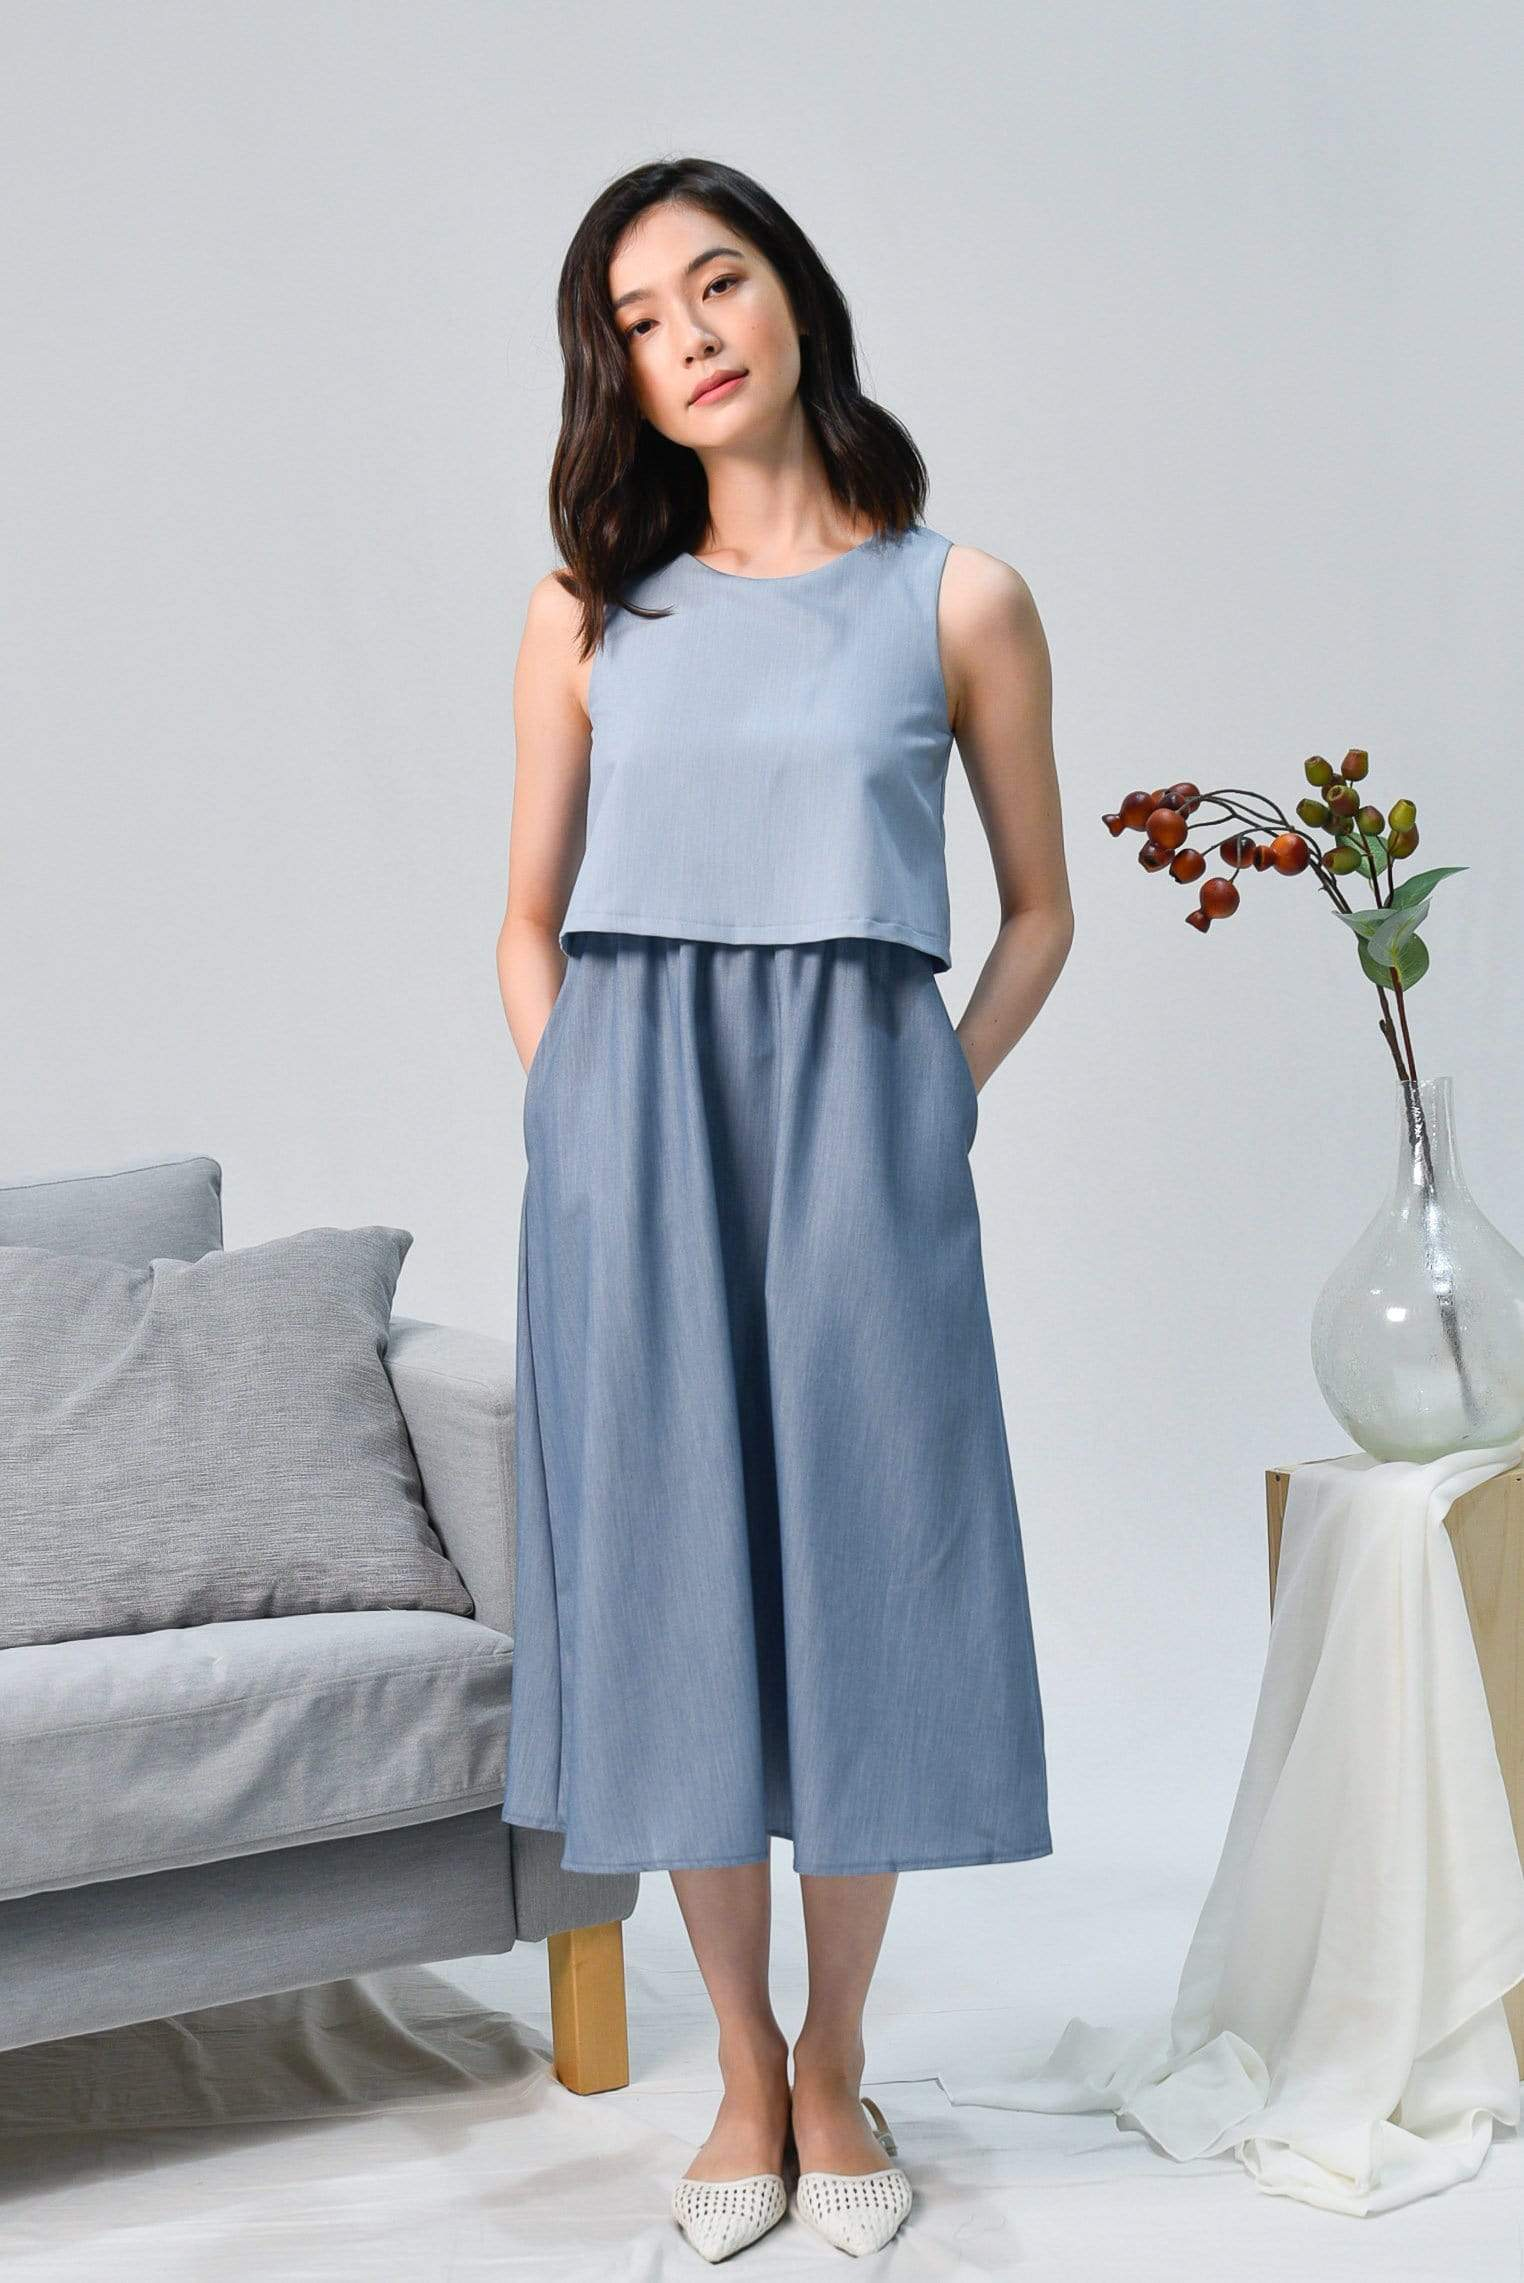 AWE Dresses CHERLYN BLUE TWO-TONE OVERLAP DRESS